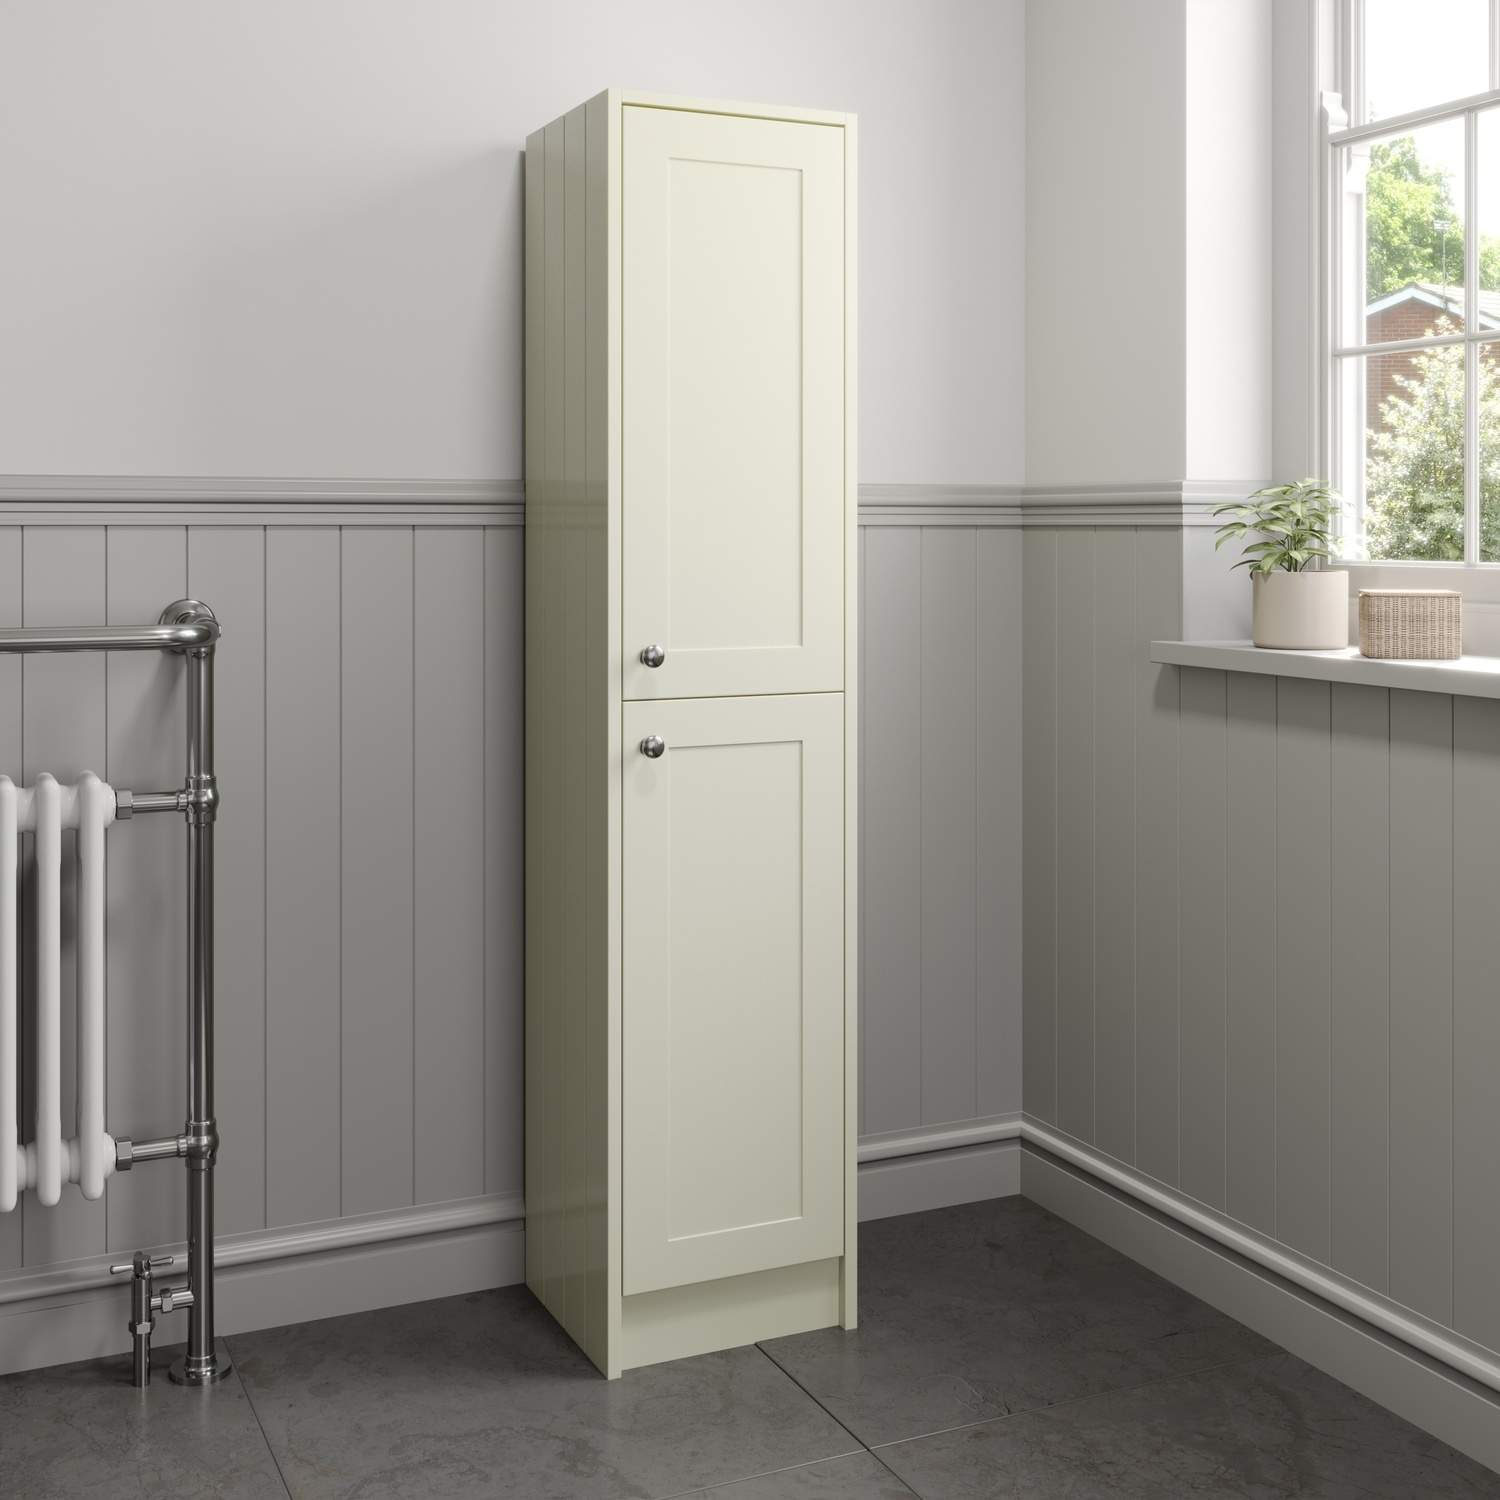 Details About Traditional 1600mm Tall Ivory Bathroom Storage Cabinet Cupboard Floorstanding throughout size 1500 X 1500